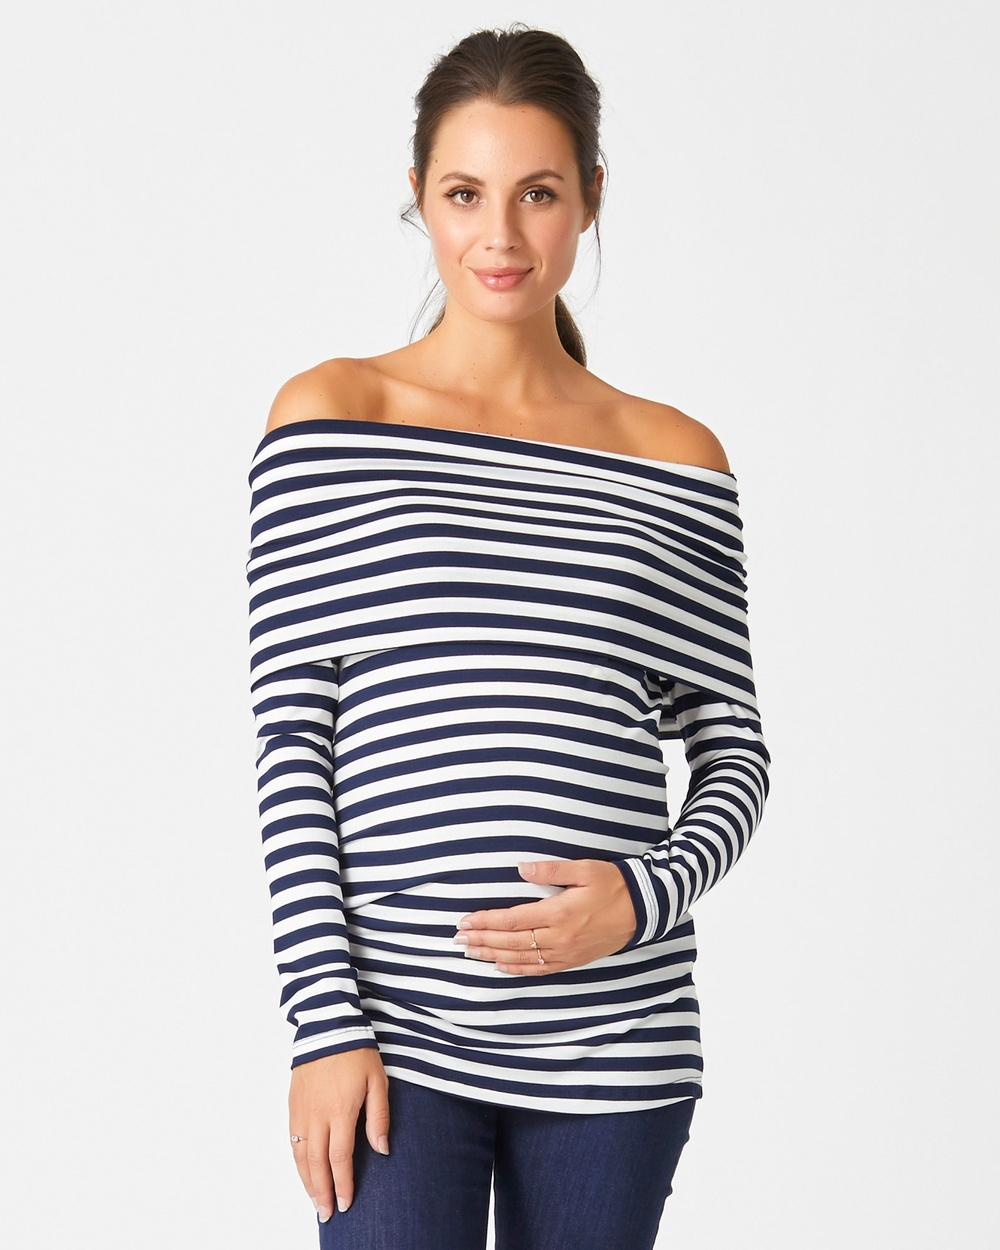 Pea in a Pod Maternity Arden Stripe Feeding Knit Tops Navy Stripe Arden Stripe Feeding Knit